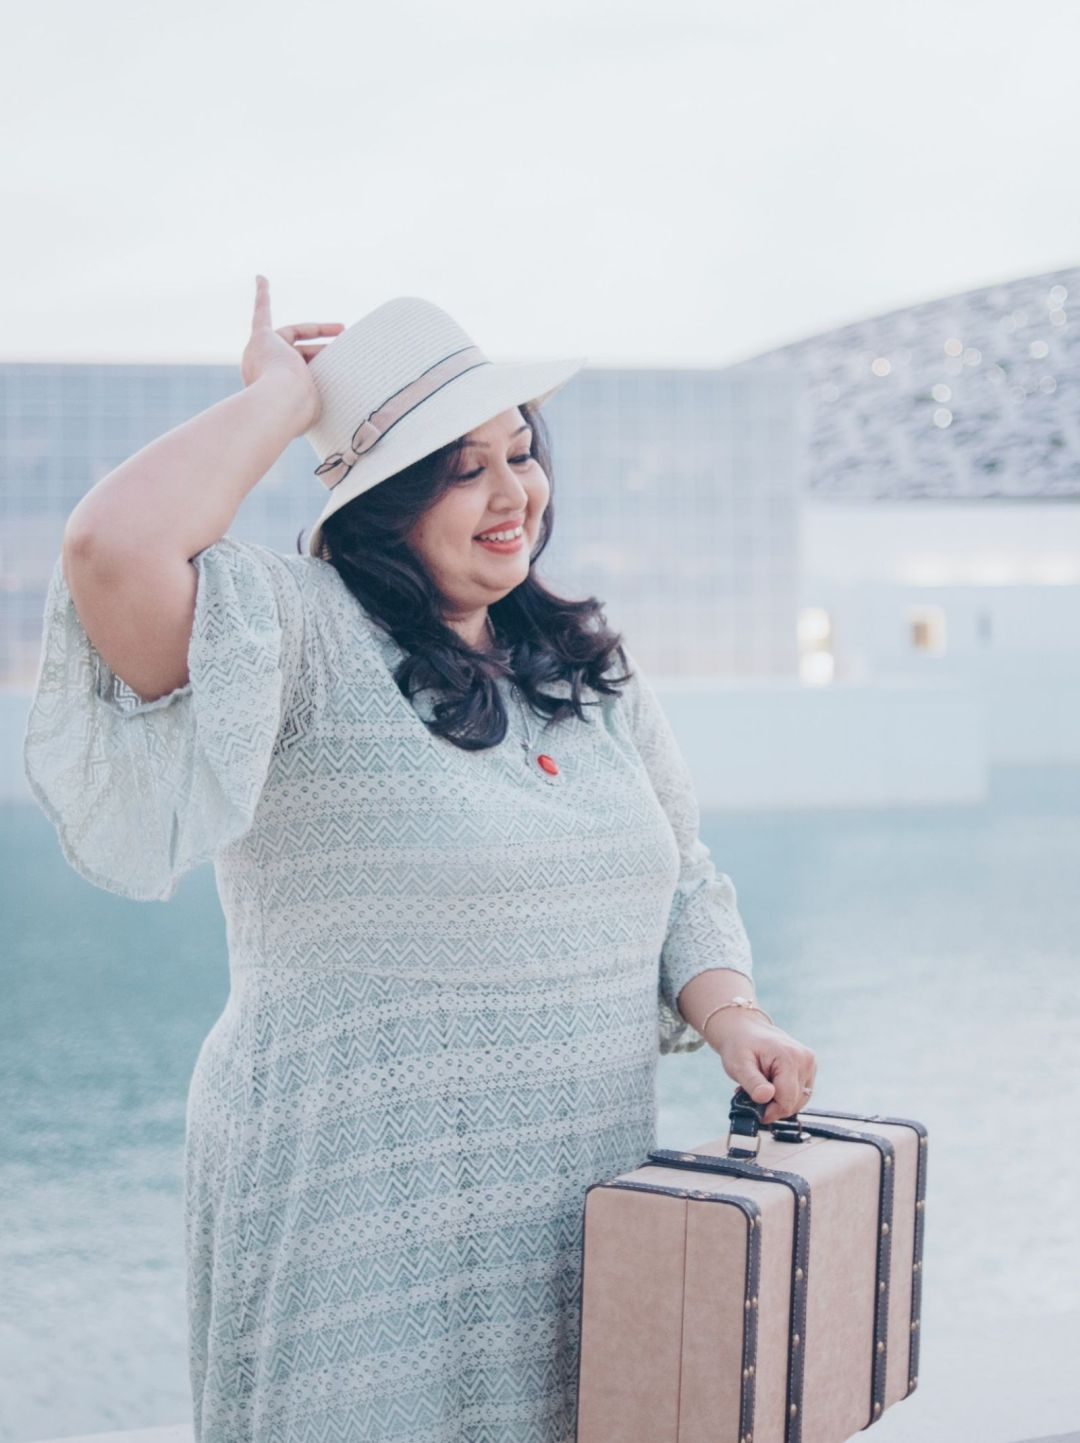 Solo woman traveller with a suitcase in Abu Dhabi